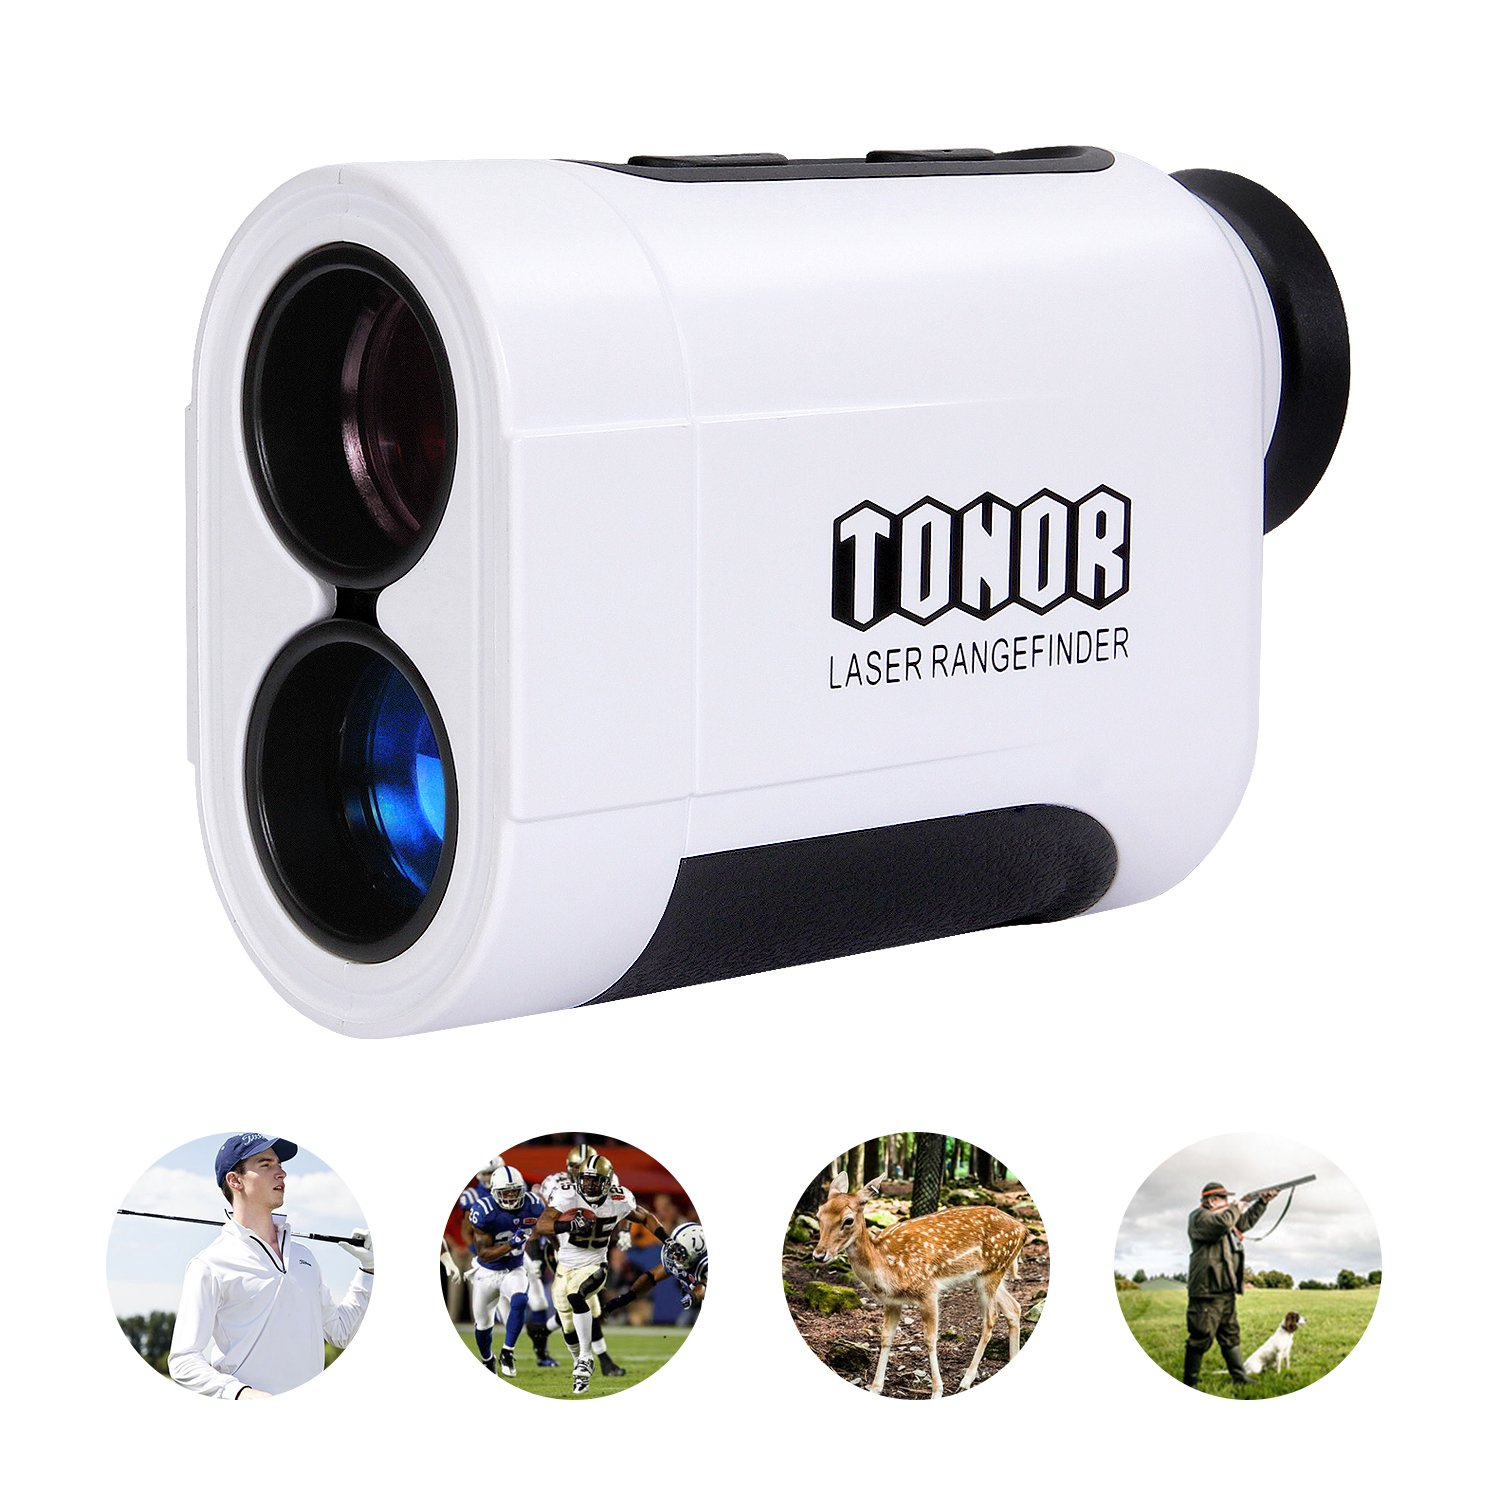 TONOR 980 Yard Laser Rangefinder Water Resistant for Golf, Hunting, Outdoor Using - Free Battery by TONOR